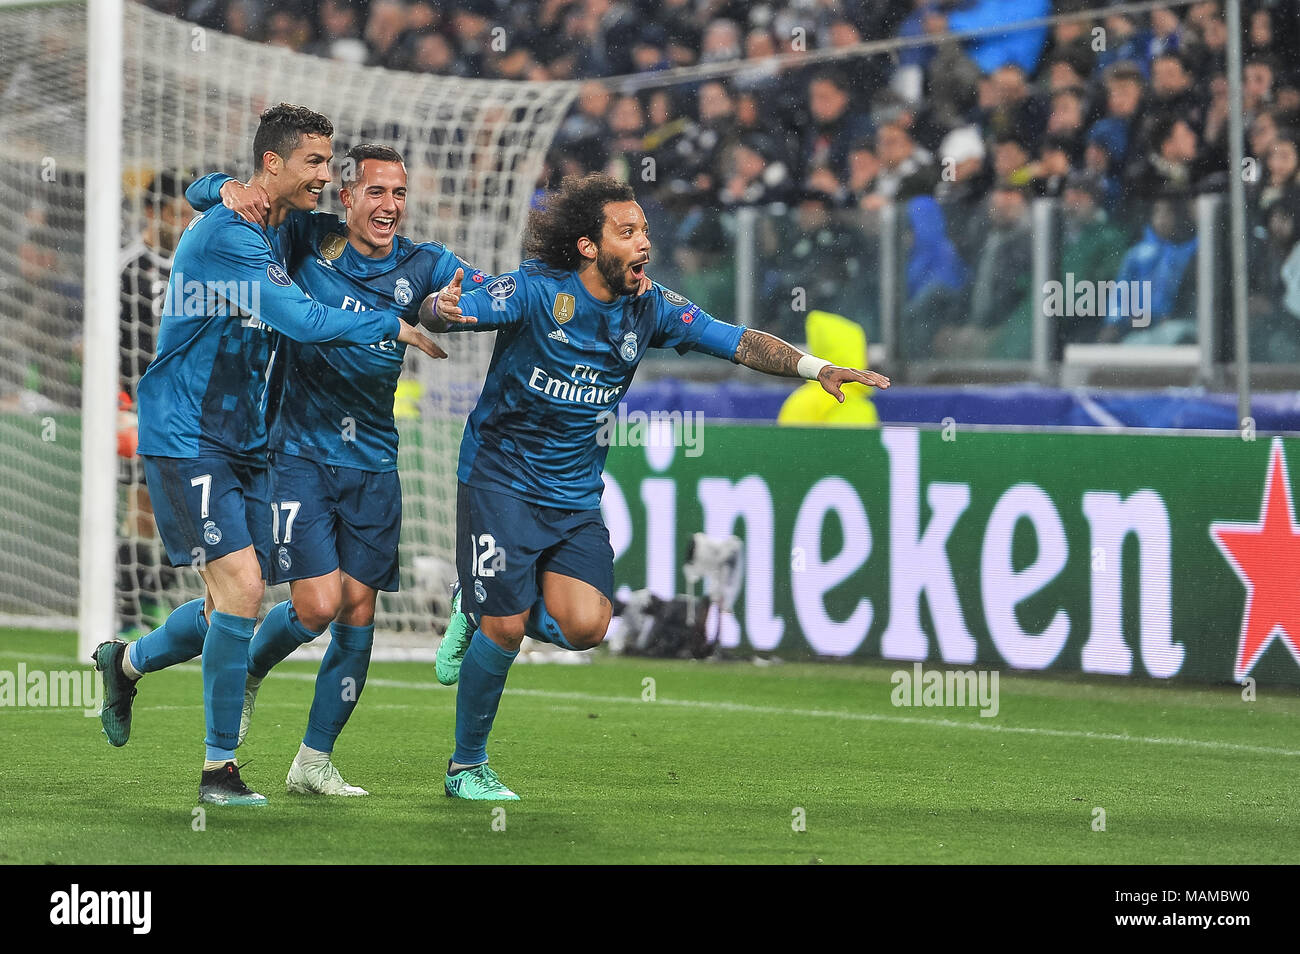 Marcelo (Real Madrid CF) and Cristiano Ronaldo (Real Madrid CF) during the UEFA Champions League football match between Juventus FC and Real Madrid CF at Allianz Stadium on 3th April, 2018 in Turin, Italy. - Stock Image